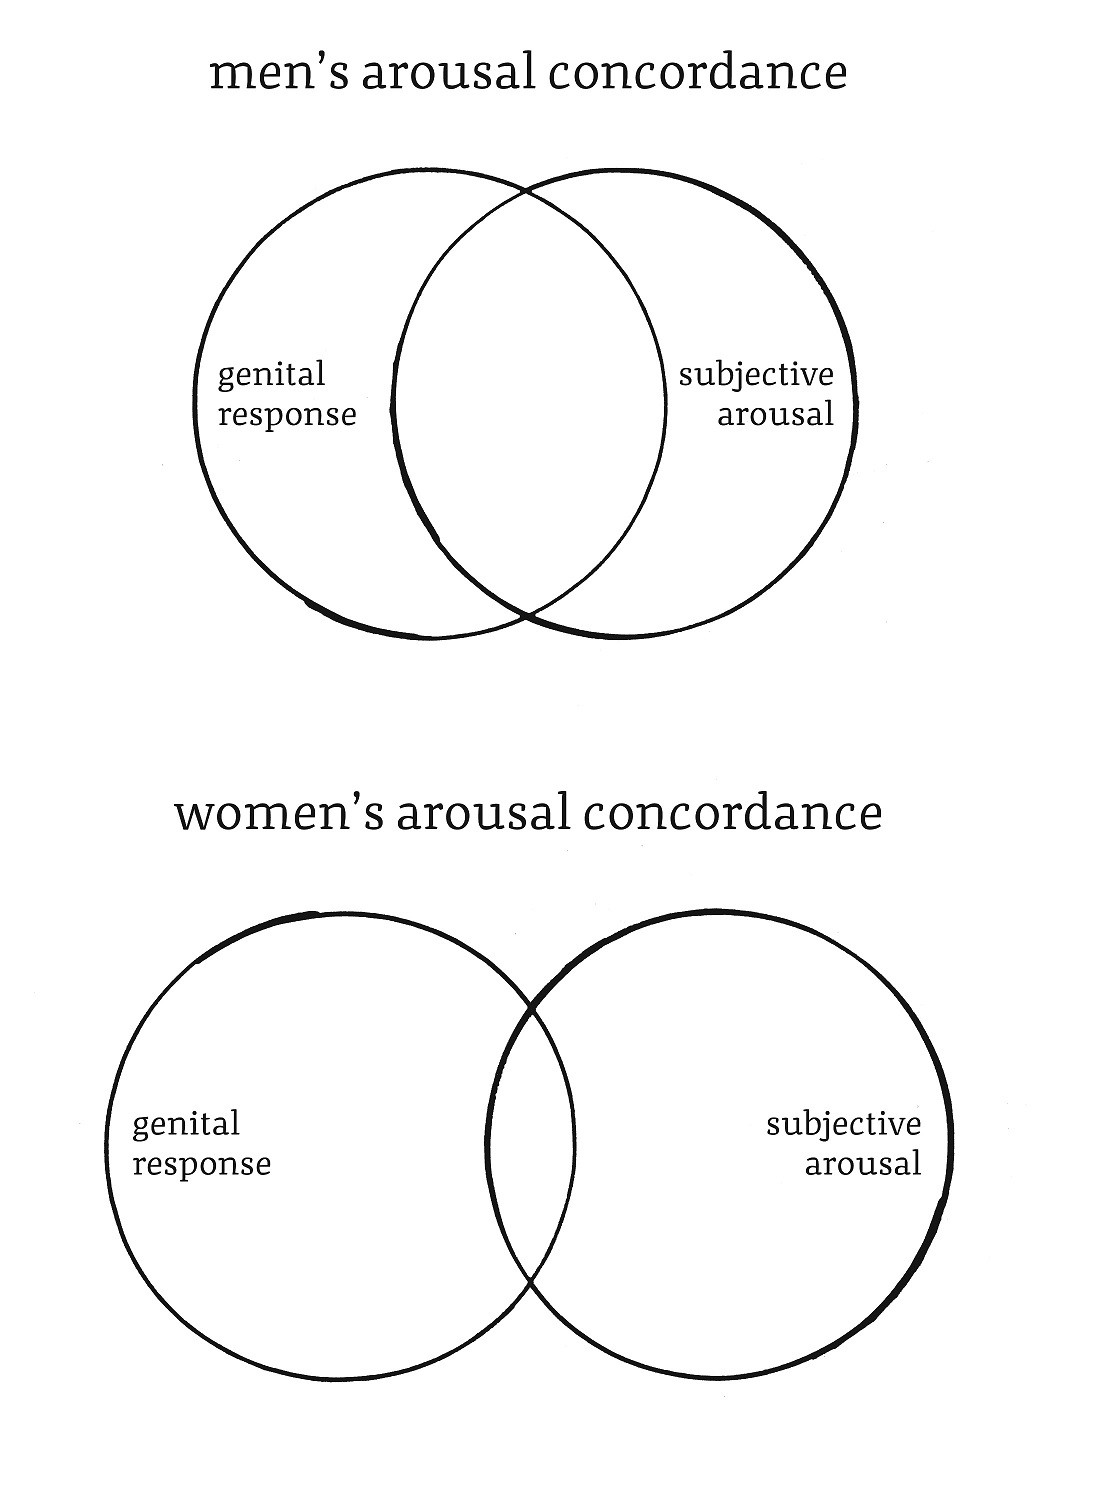 The Overlap Between How Much Mens Bodies Respond And How Turned On They Feel Is 50 In Women The Overlap Is 10